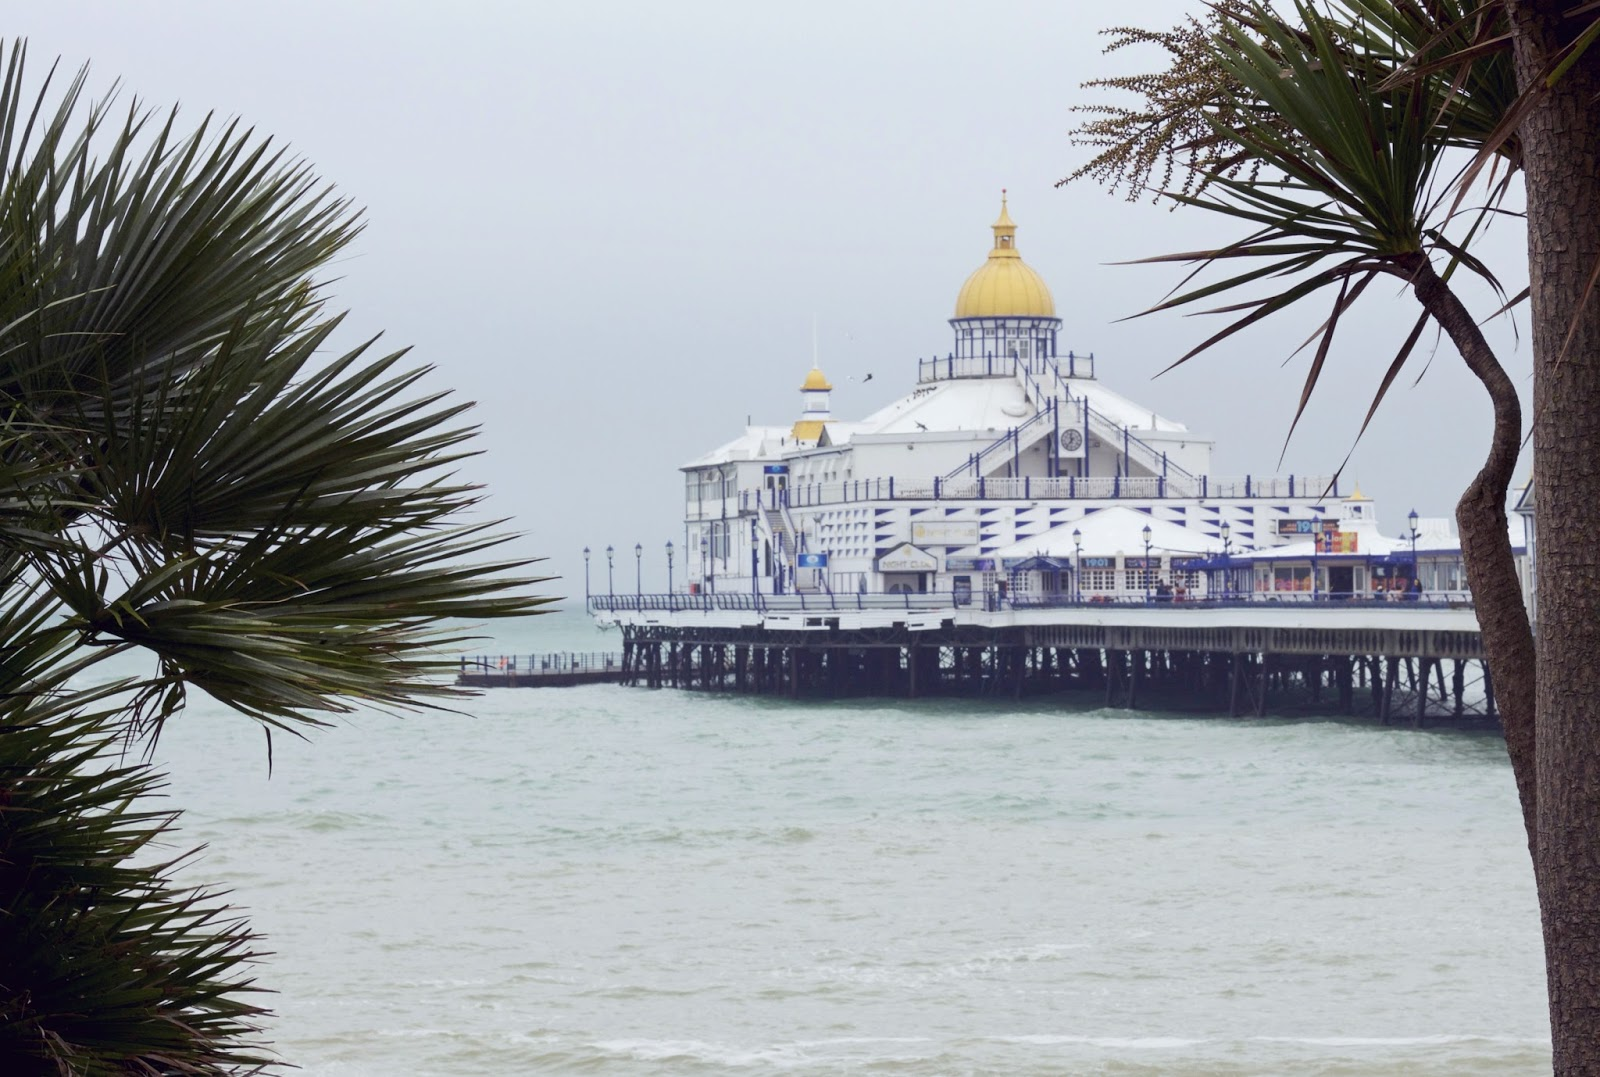 Eastbourne Pier, Eastbourne Palm Trees, Day out in Eastbourne, British seasides, down south UK, Palm trees, uk blogger, travel blogging, travel and lifestyle, eastbourne, 100 Ways to 30 Blog